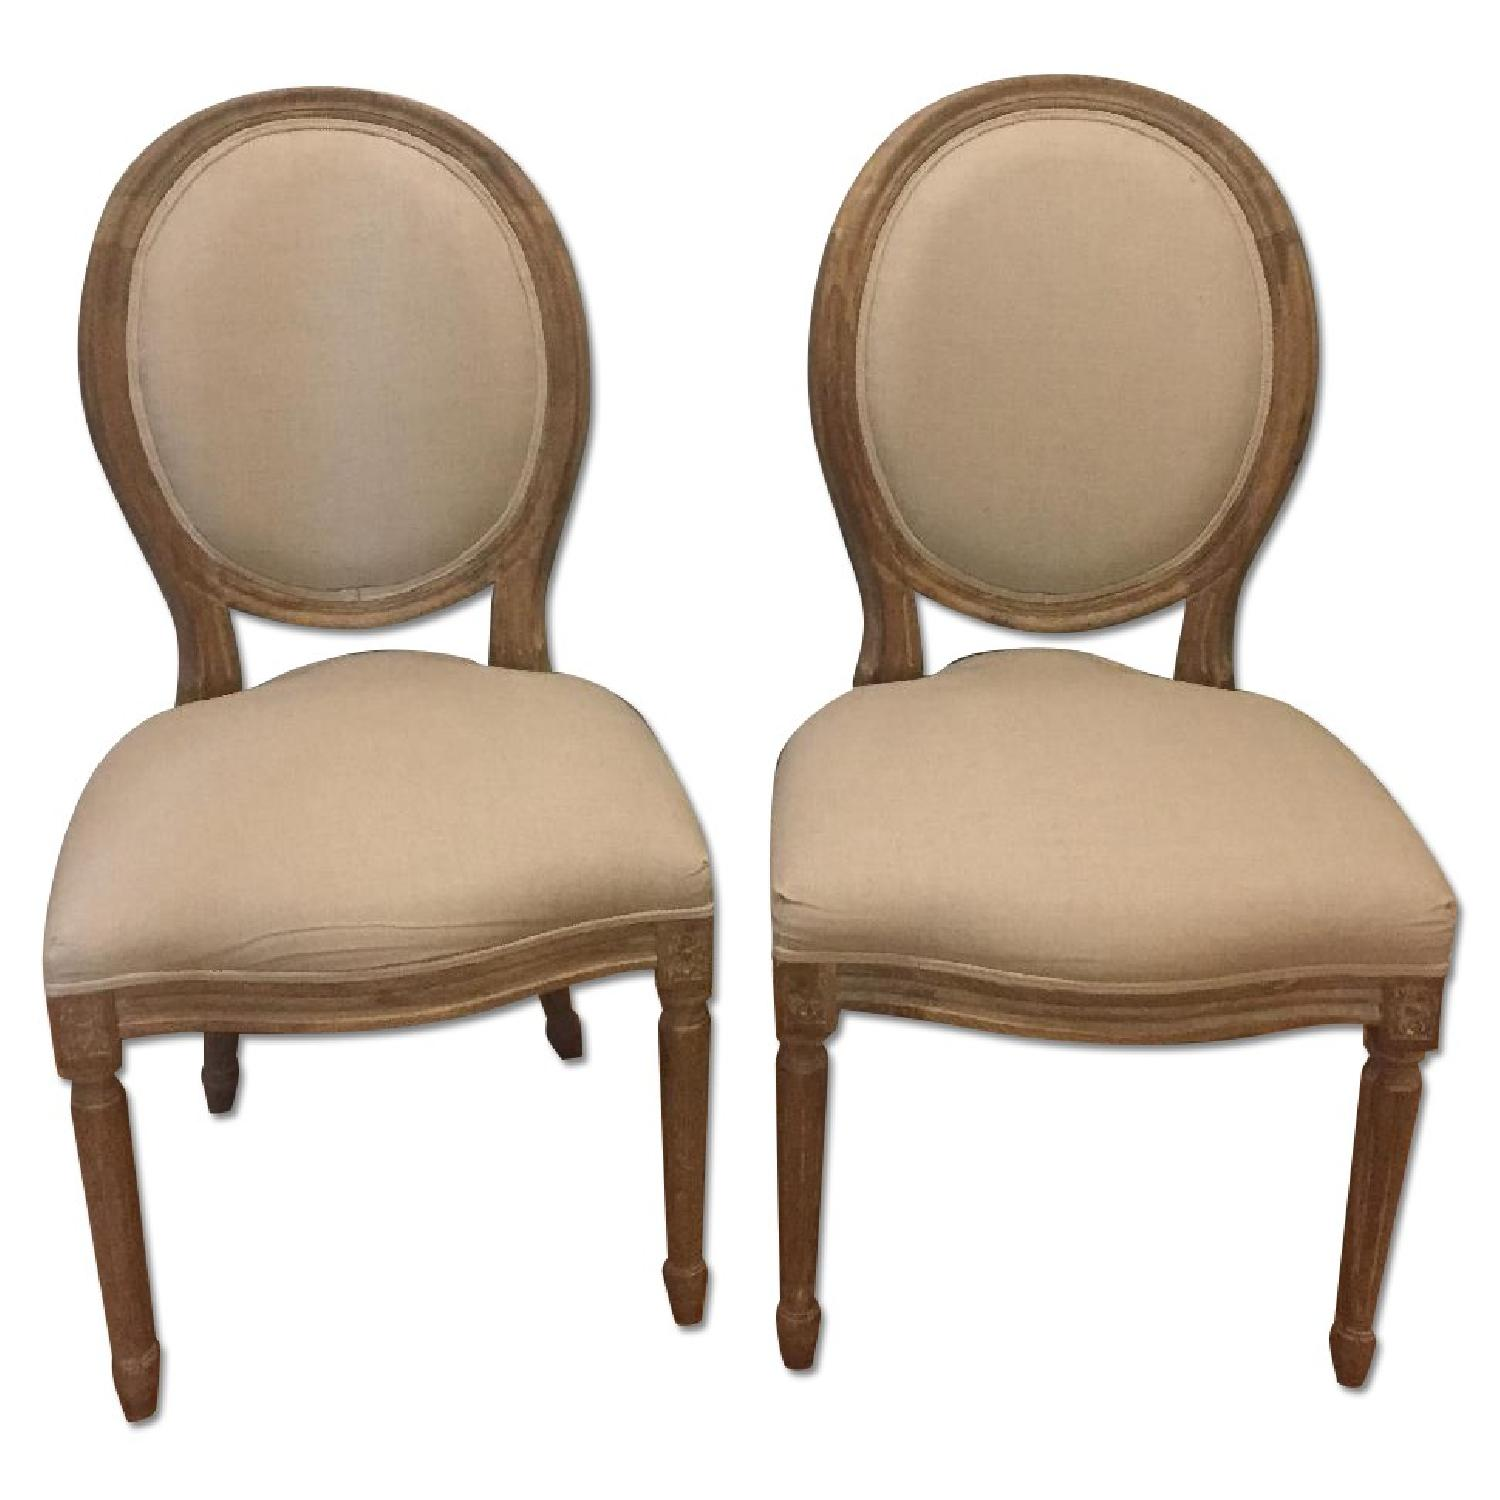 Wisteria Louis XVI Dining Chairs - image-0